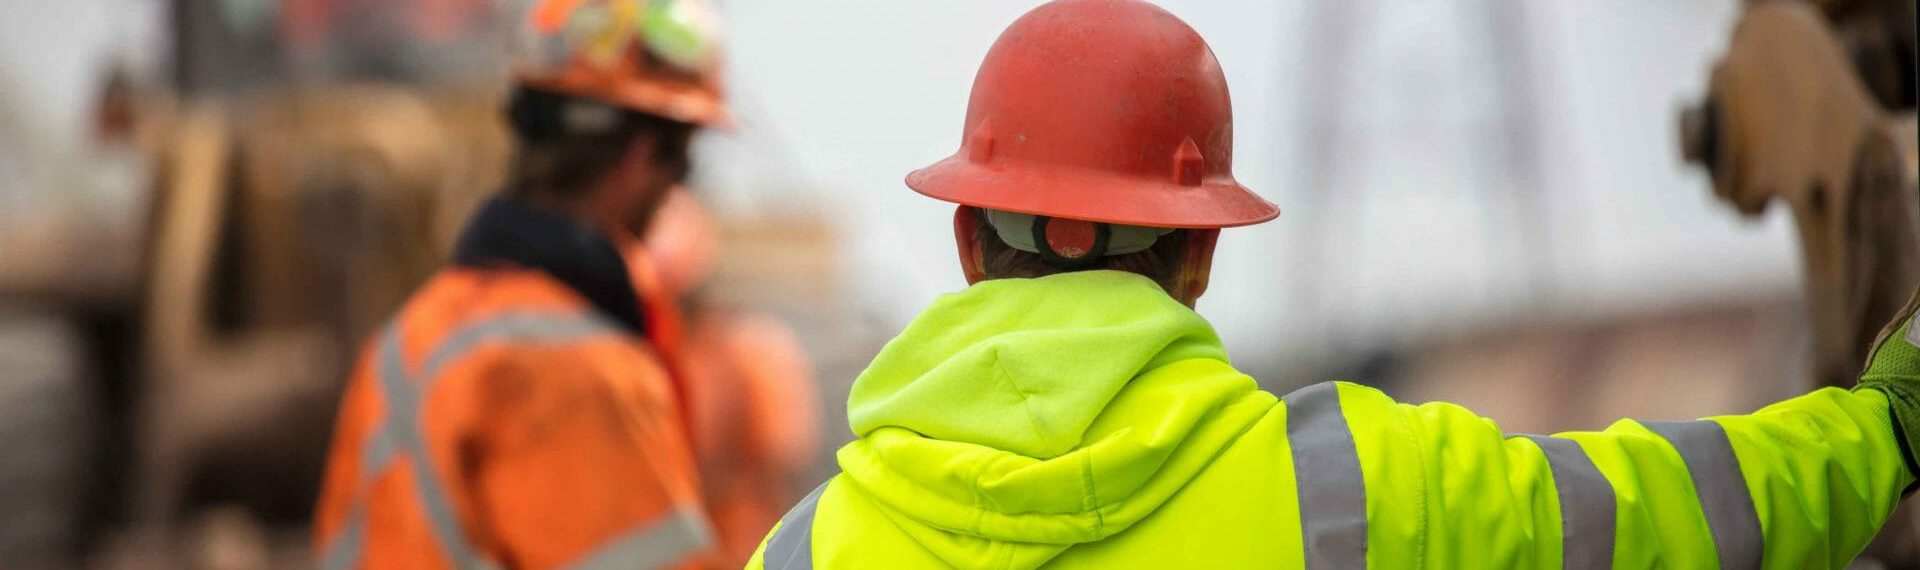 What requirements are there for getting Construction Contractor Insurance?